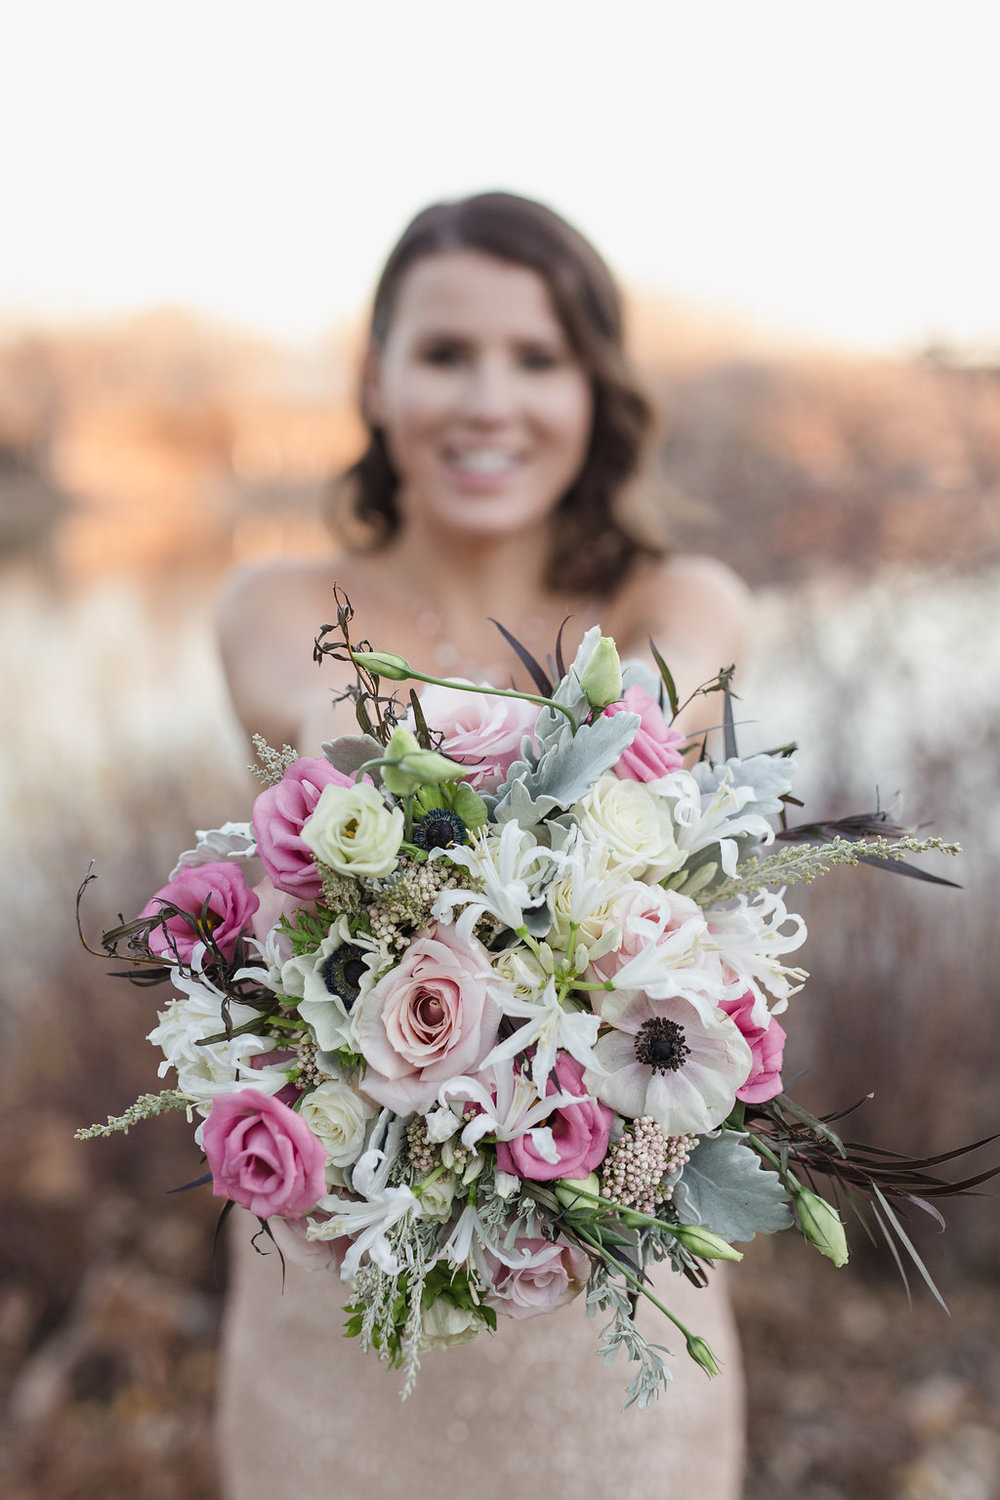 Textured Pink and White Bridal Bouquet - Stone House Creative